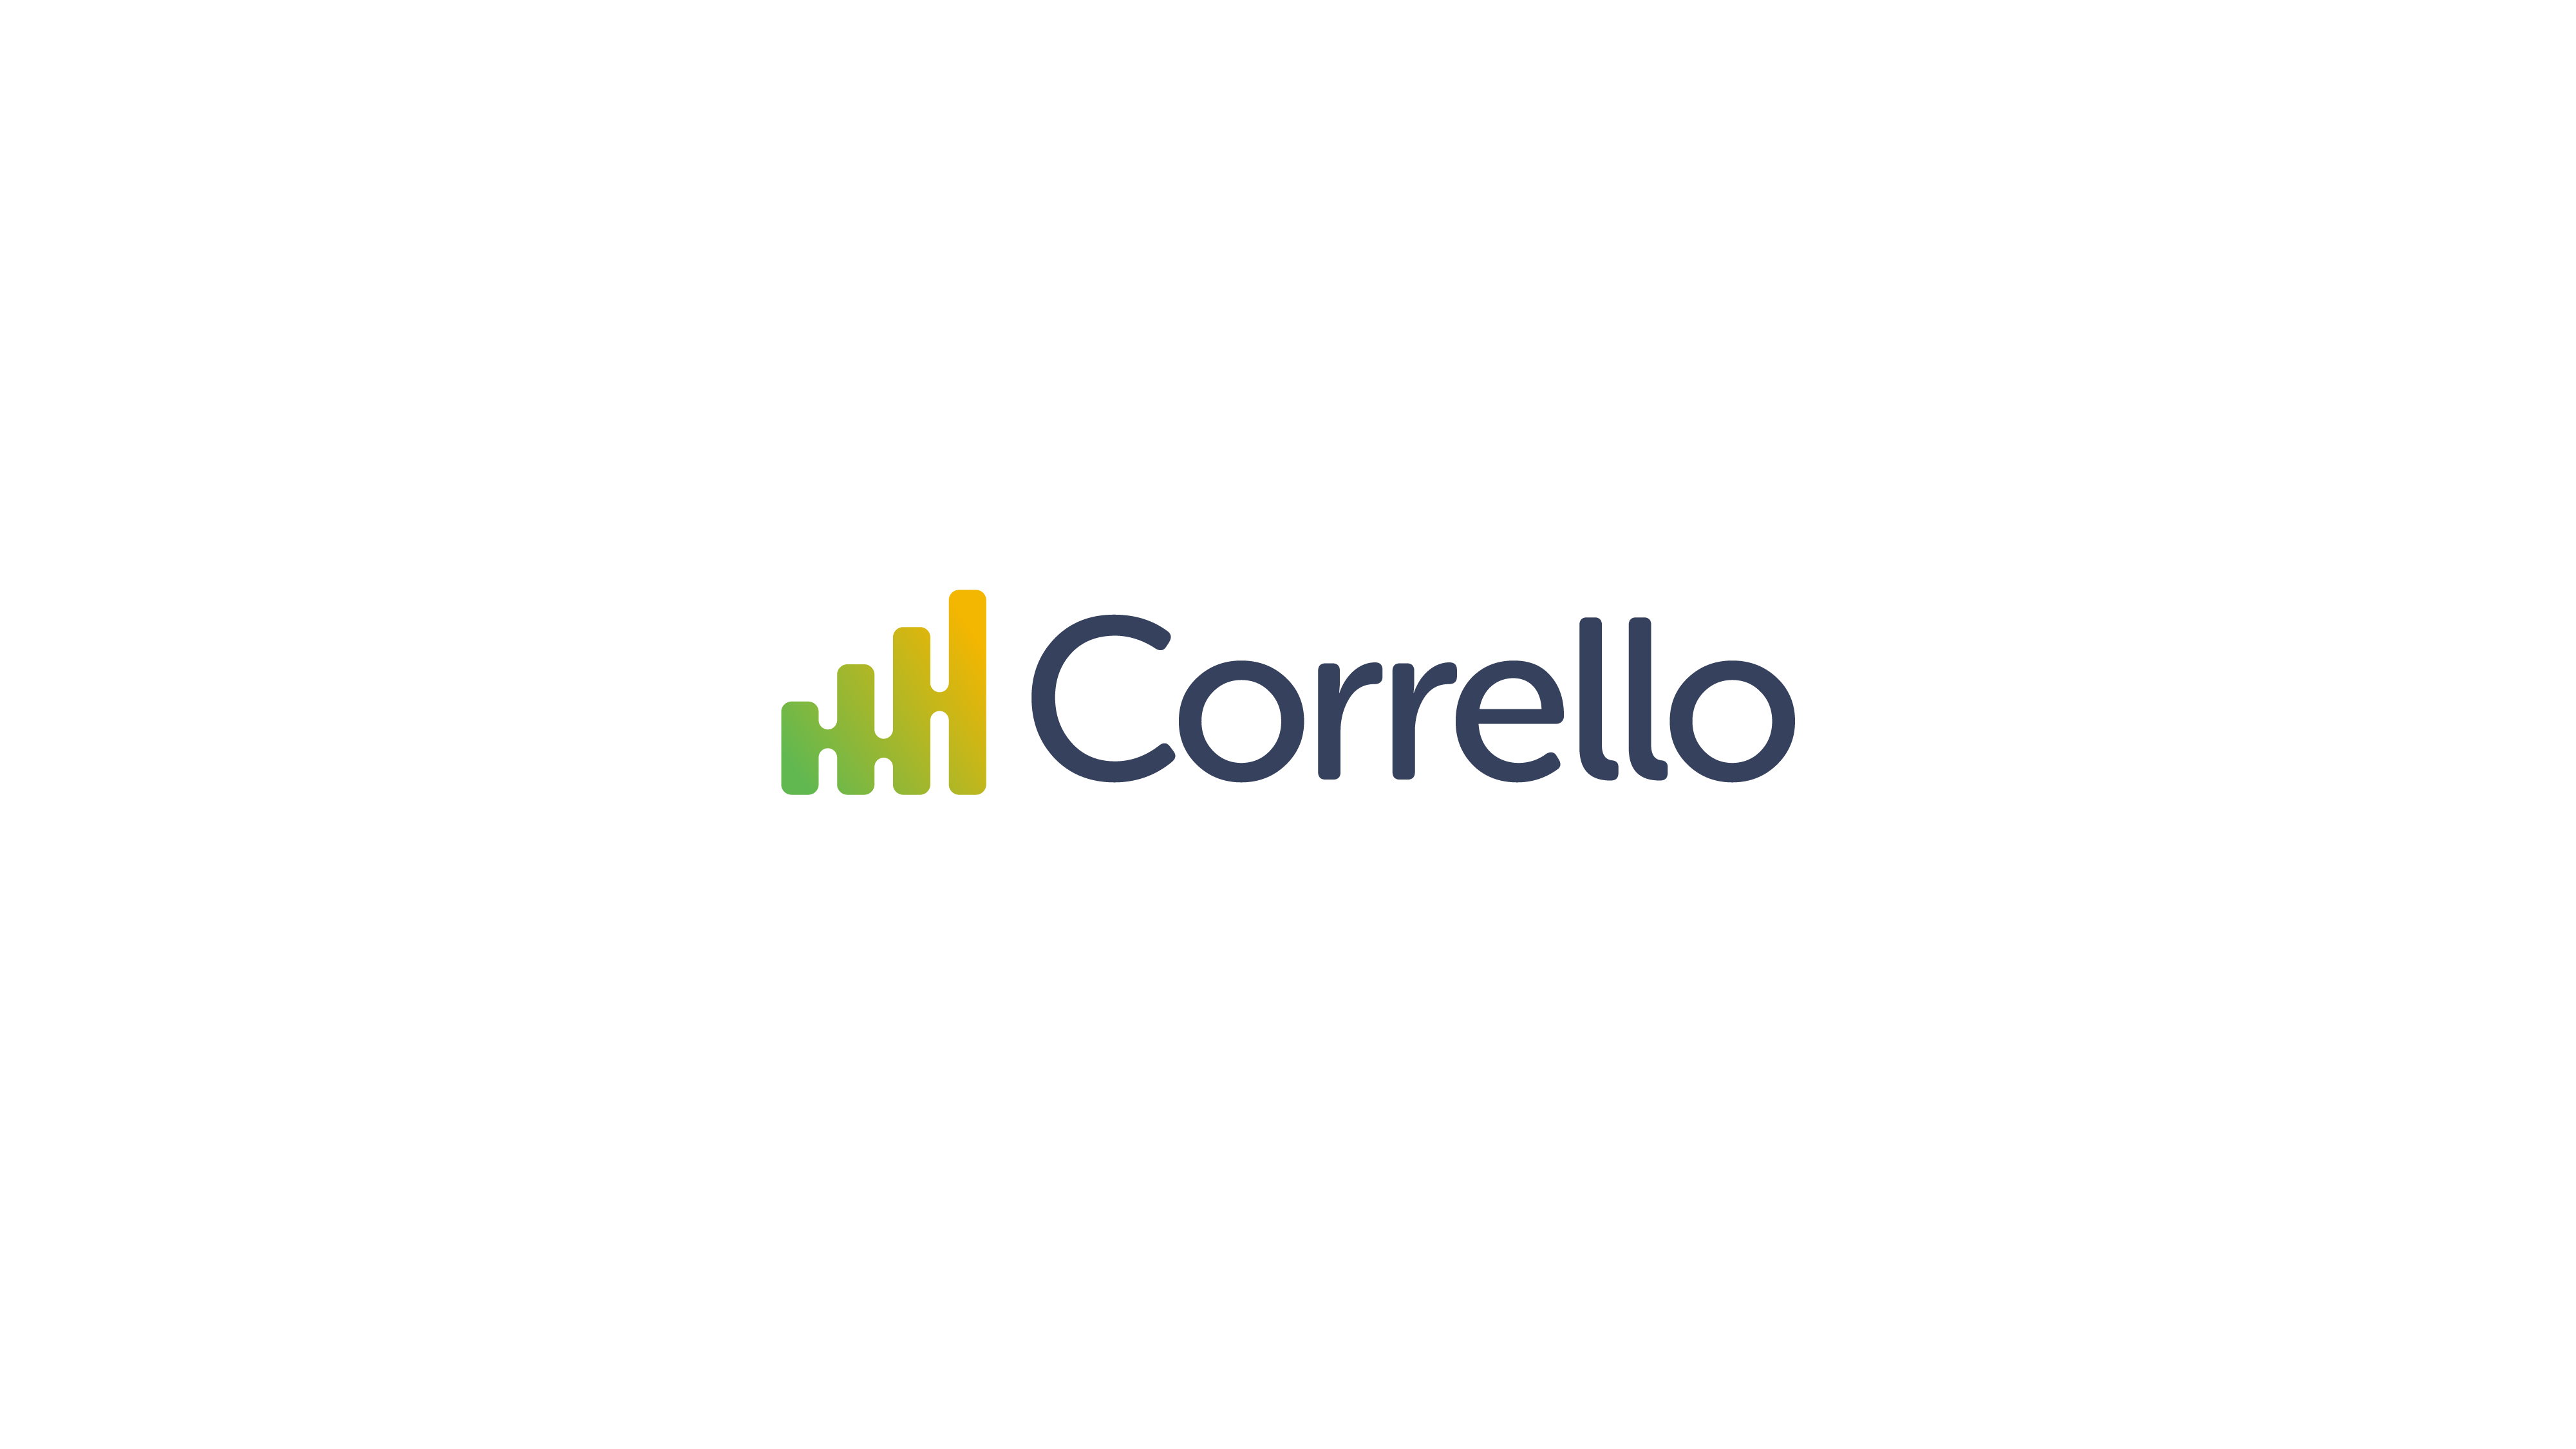 soft logo for trello extension showing the connected graph or charts